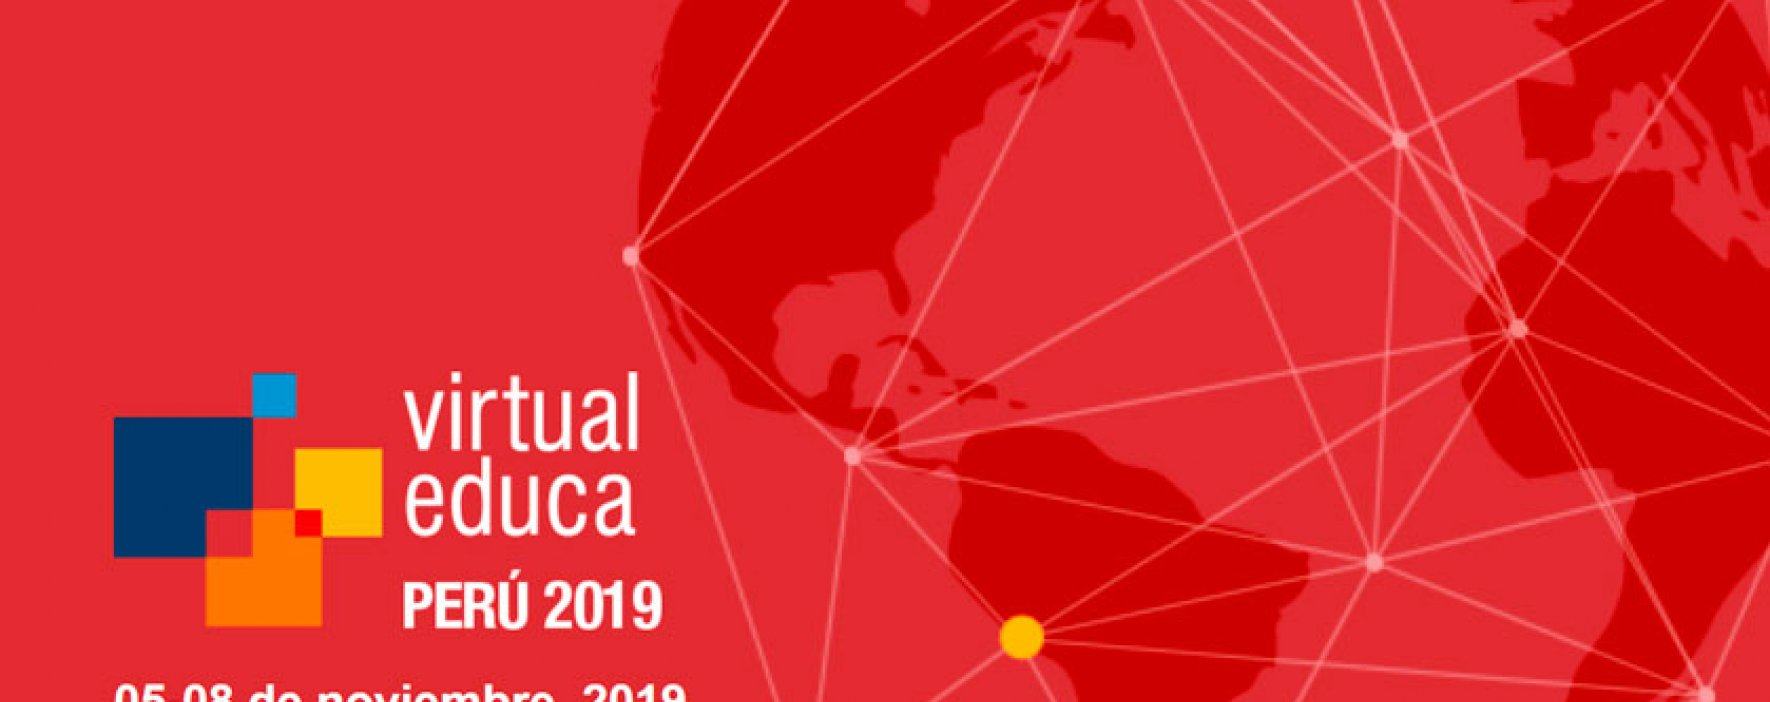 XXI Encuentro Internacional Virtual Educa Perú 2019